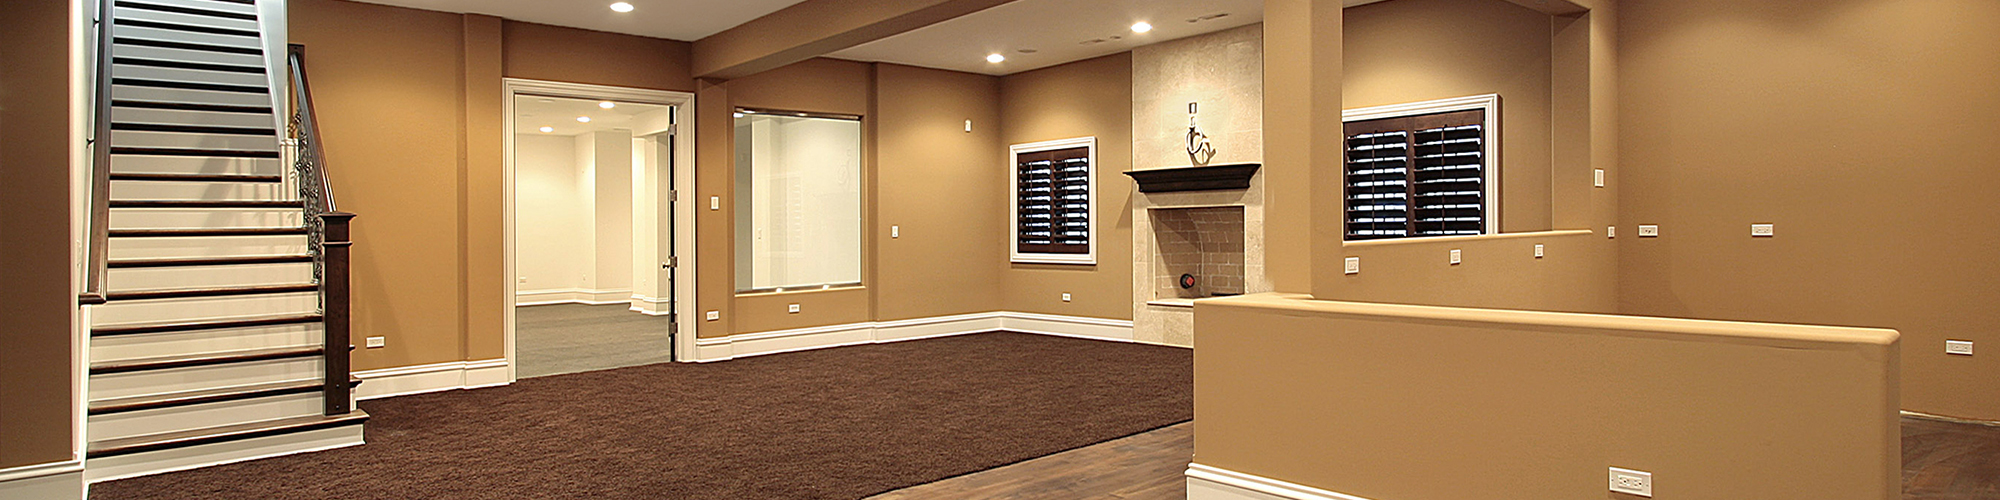 Basement Design Services basement design services awesome basement remodels marietta georgia designers 17 best 25 Basement Design Services In Atlanta Bringing Your Ideas To Life